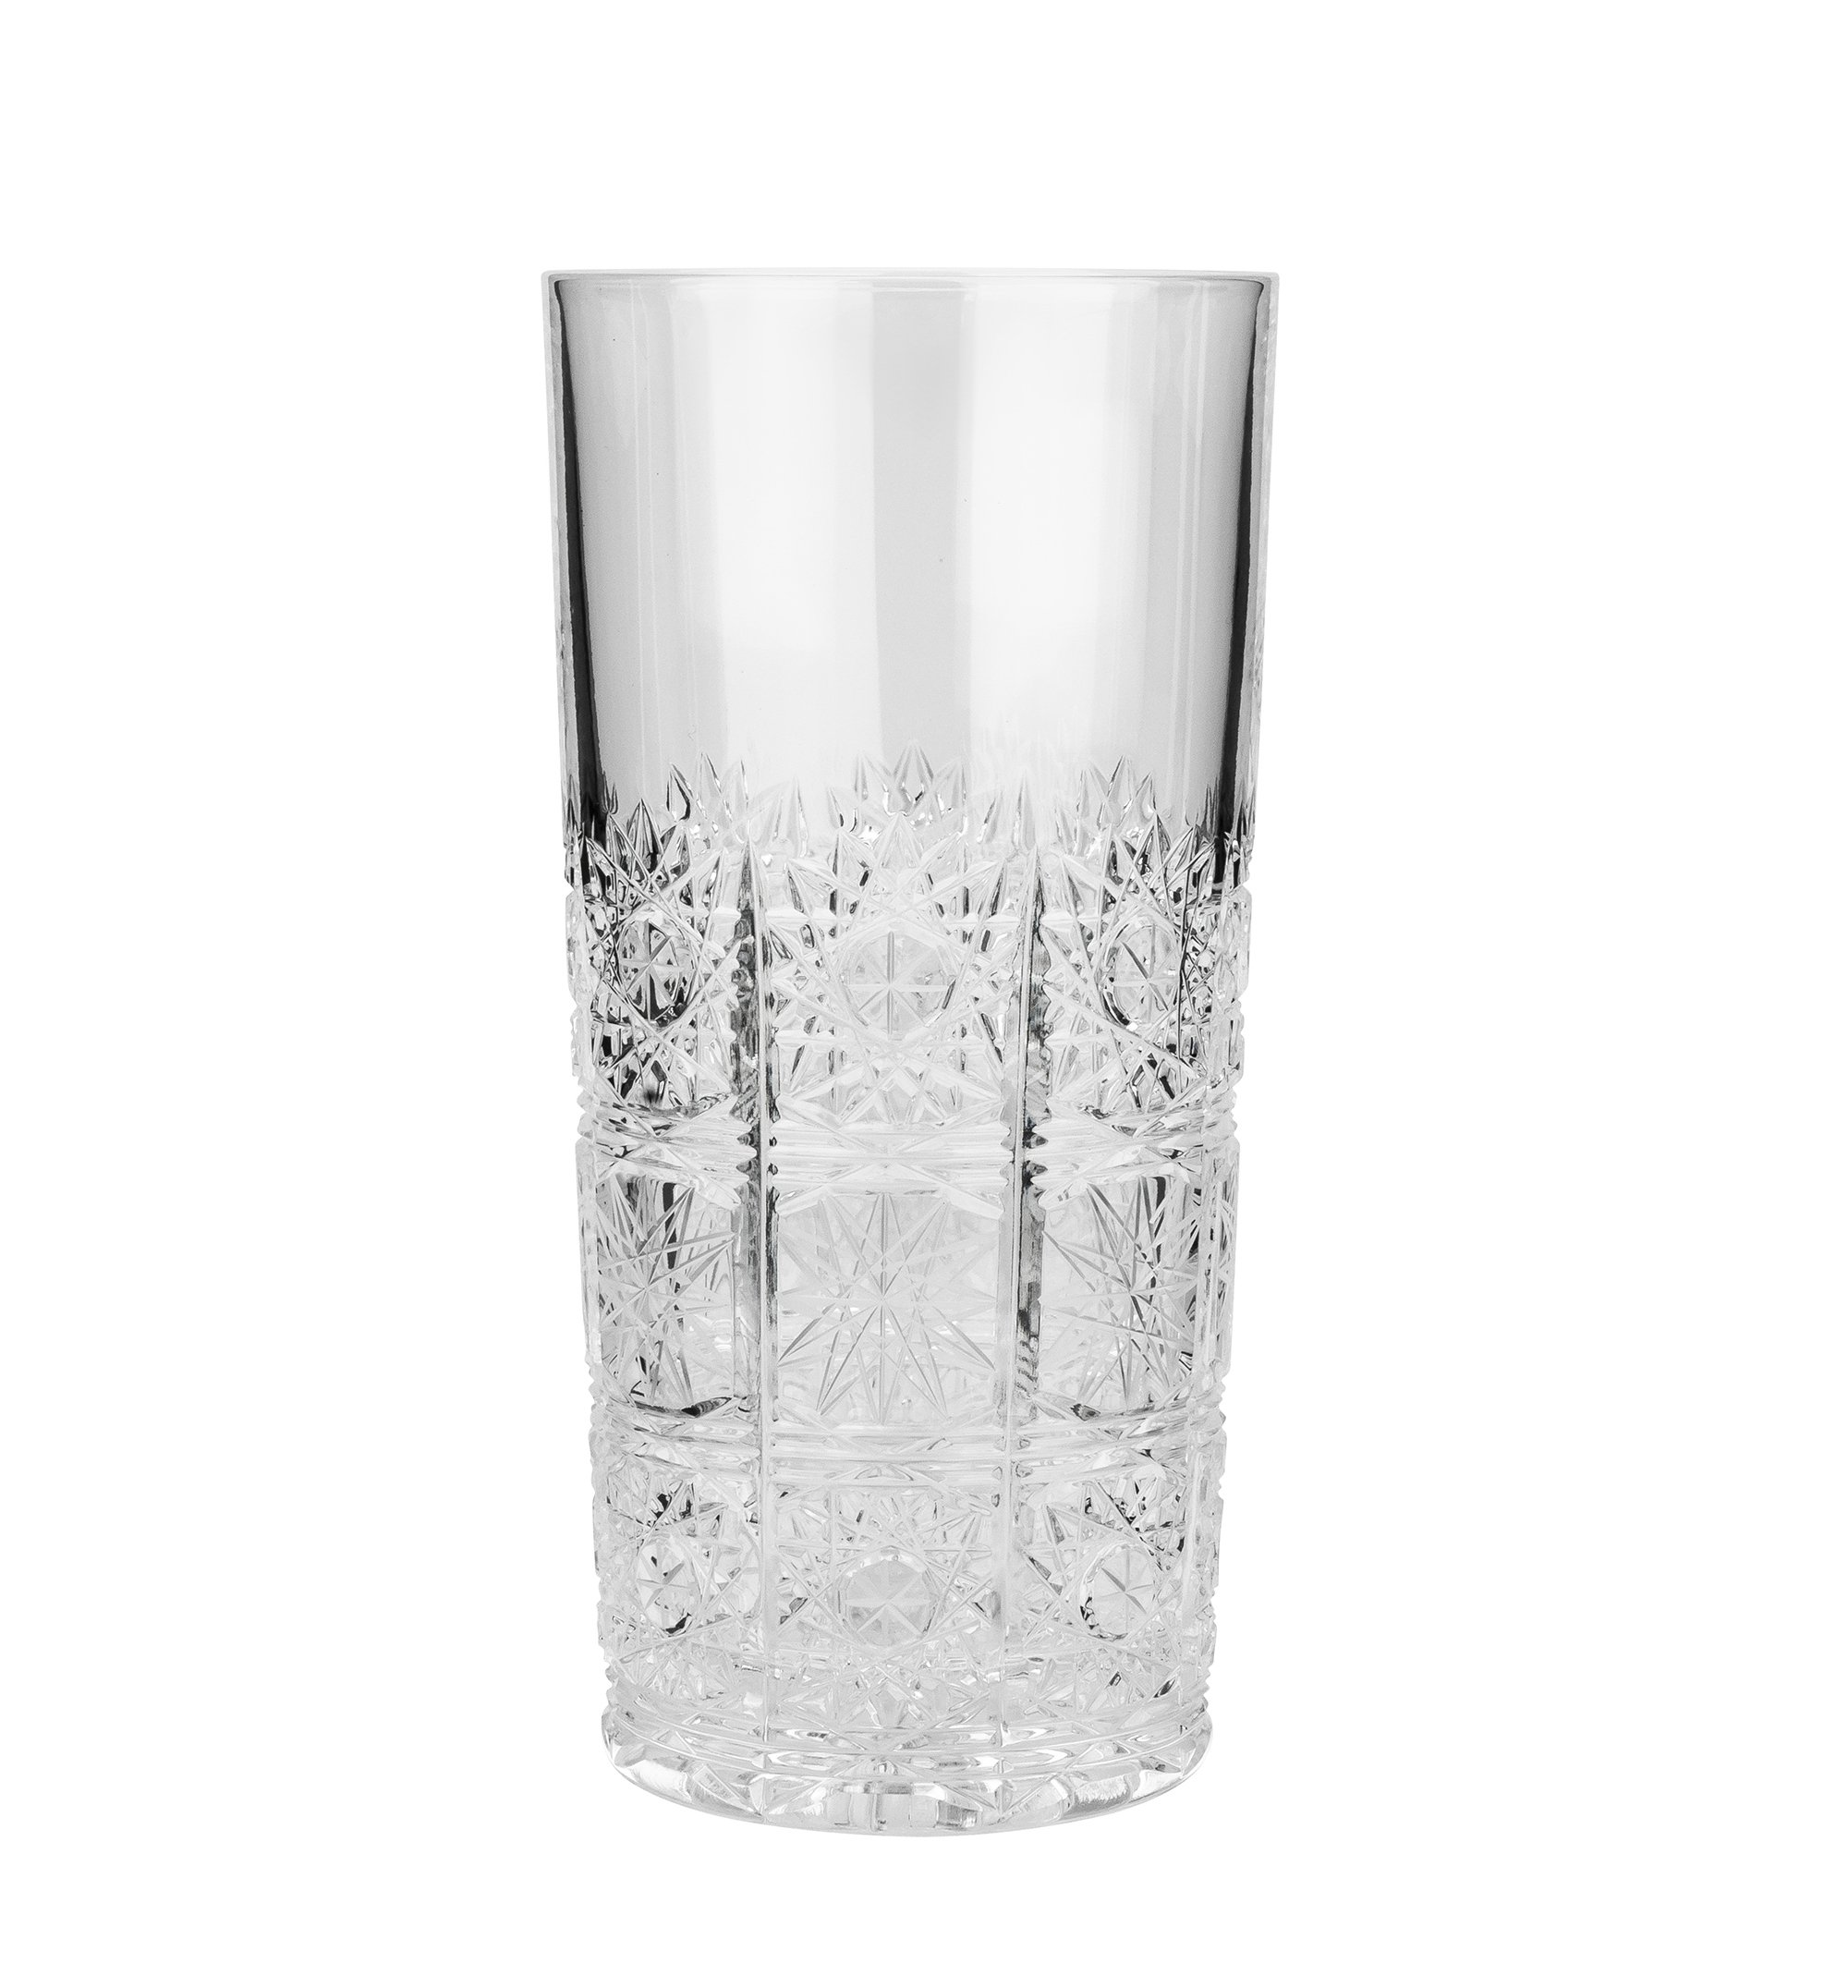 Aurum Crystal AU50845, 12 Oz Hand-Made Crystal Highball Tumblers, Clear Drinking Iced Tea Beverage Cocktail Glasses with Heavy Base, Wedding Gift Drinkware, Set of 6